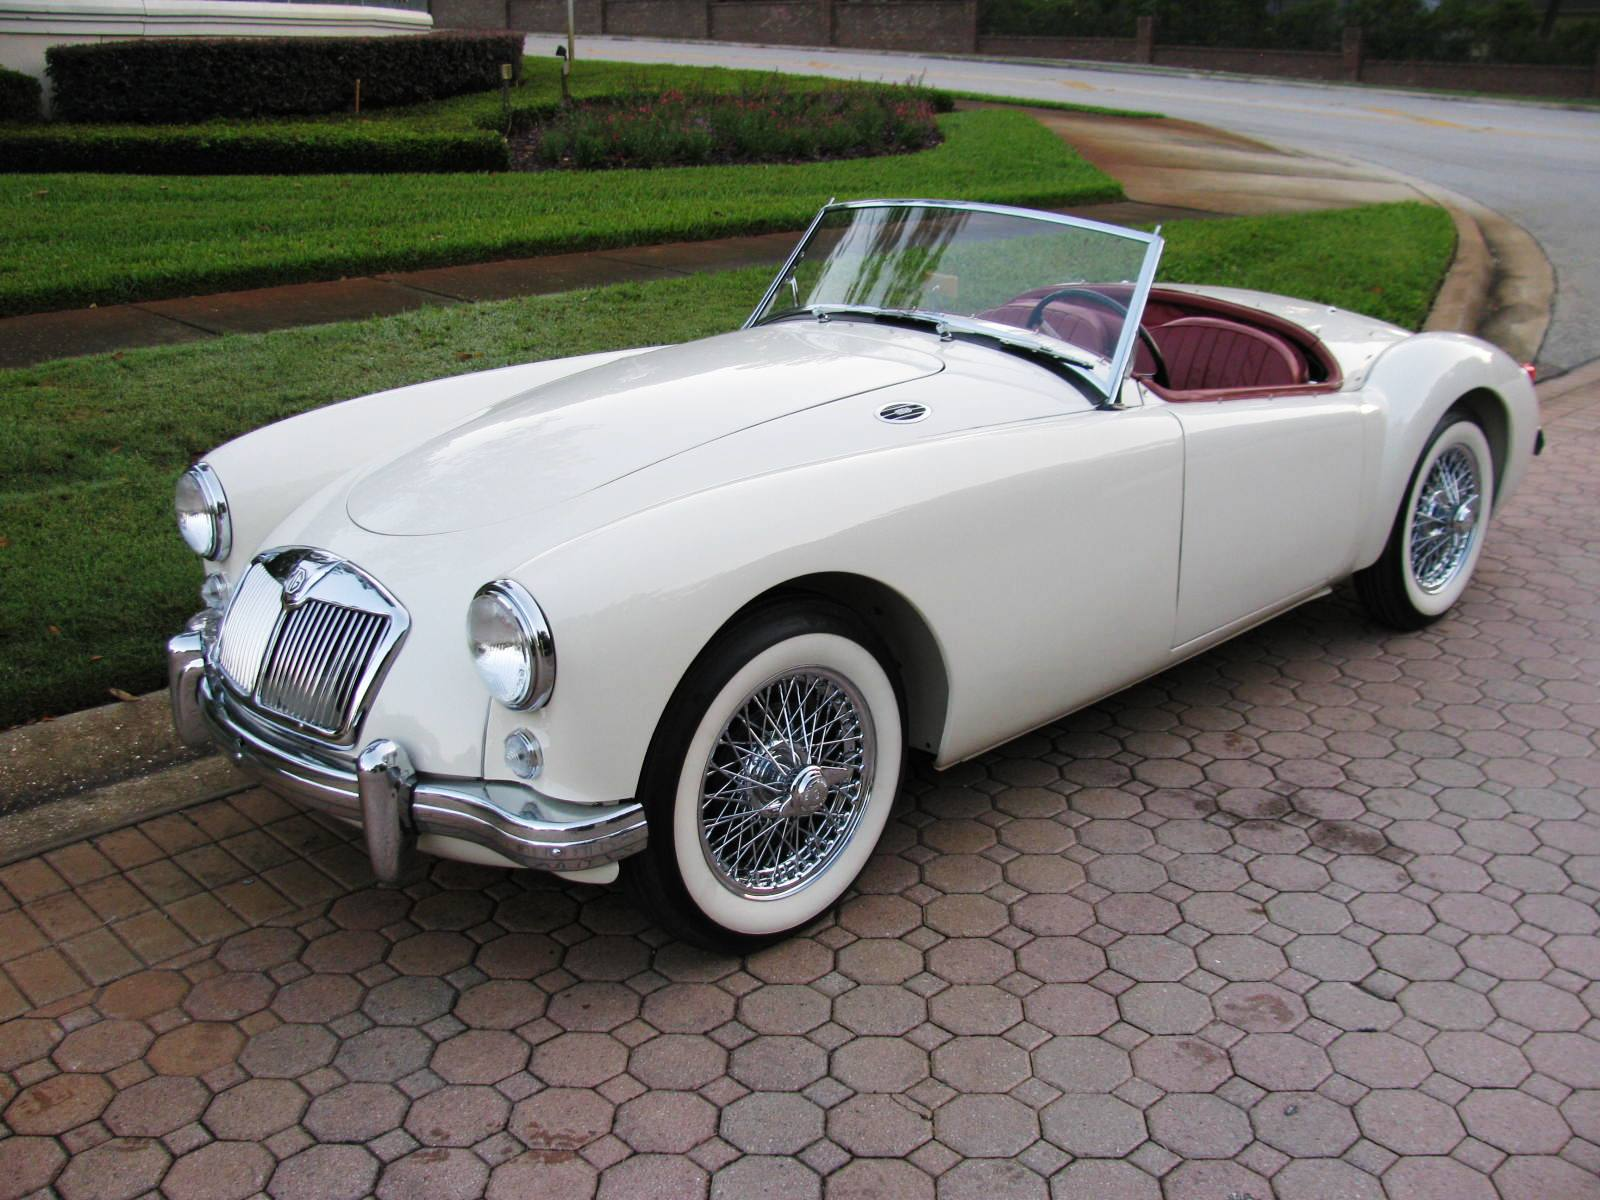 1958 Mga Roadster Sold Vantage Sports Cars Vantage